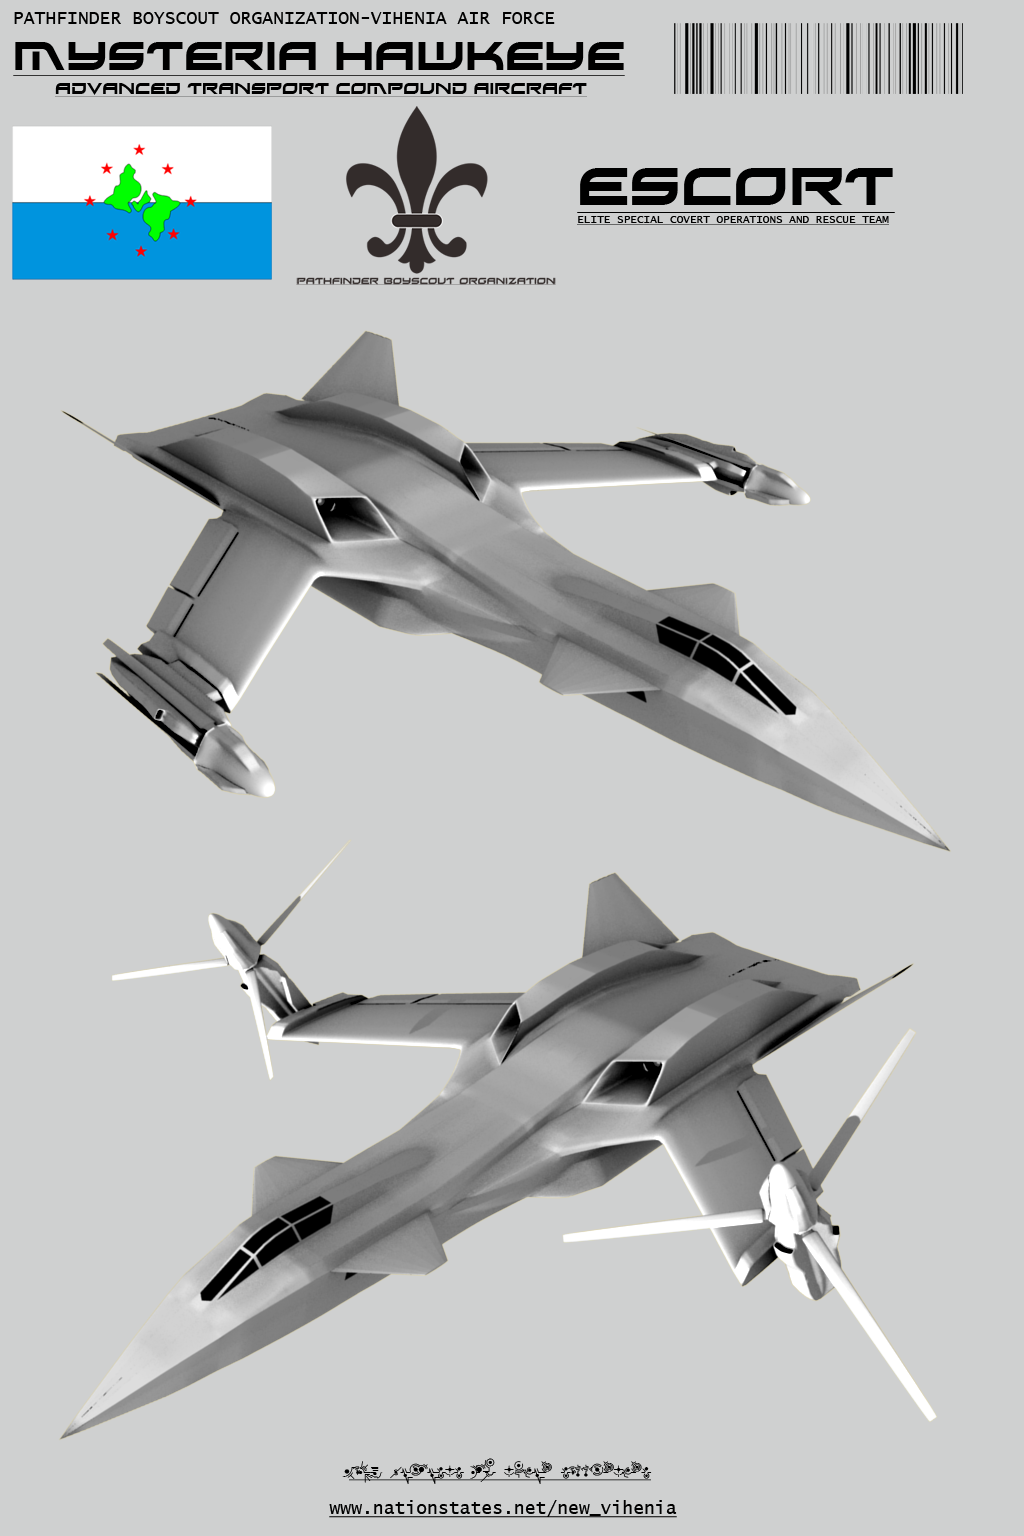 mysteria_hawkeye_compound_aircraft_by_stealthflanker-d57cdd3.png